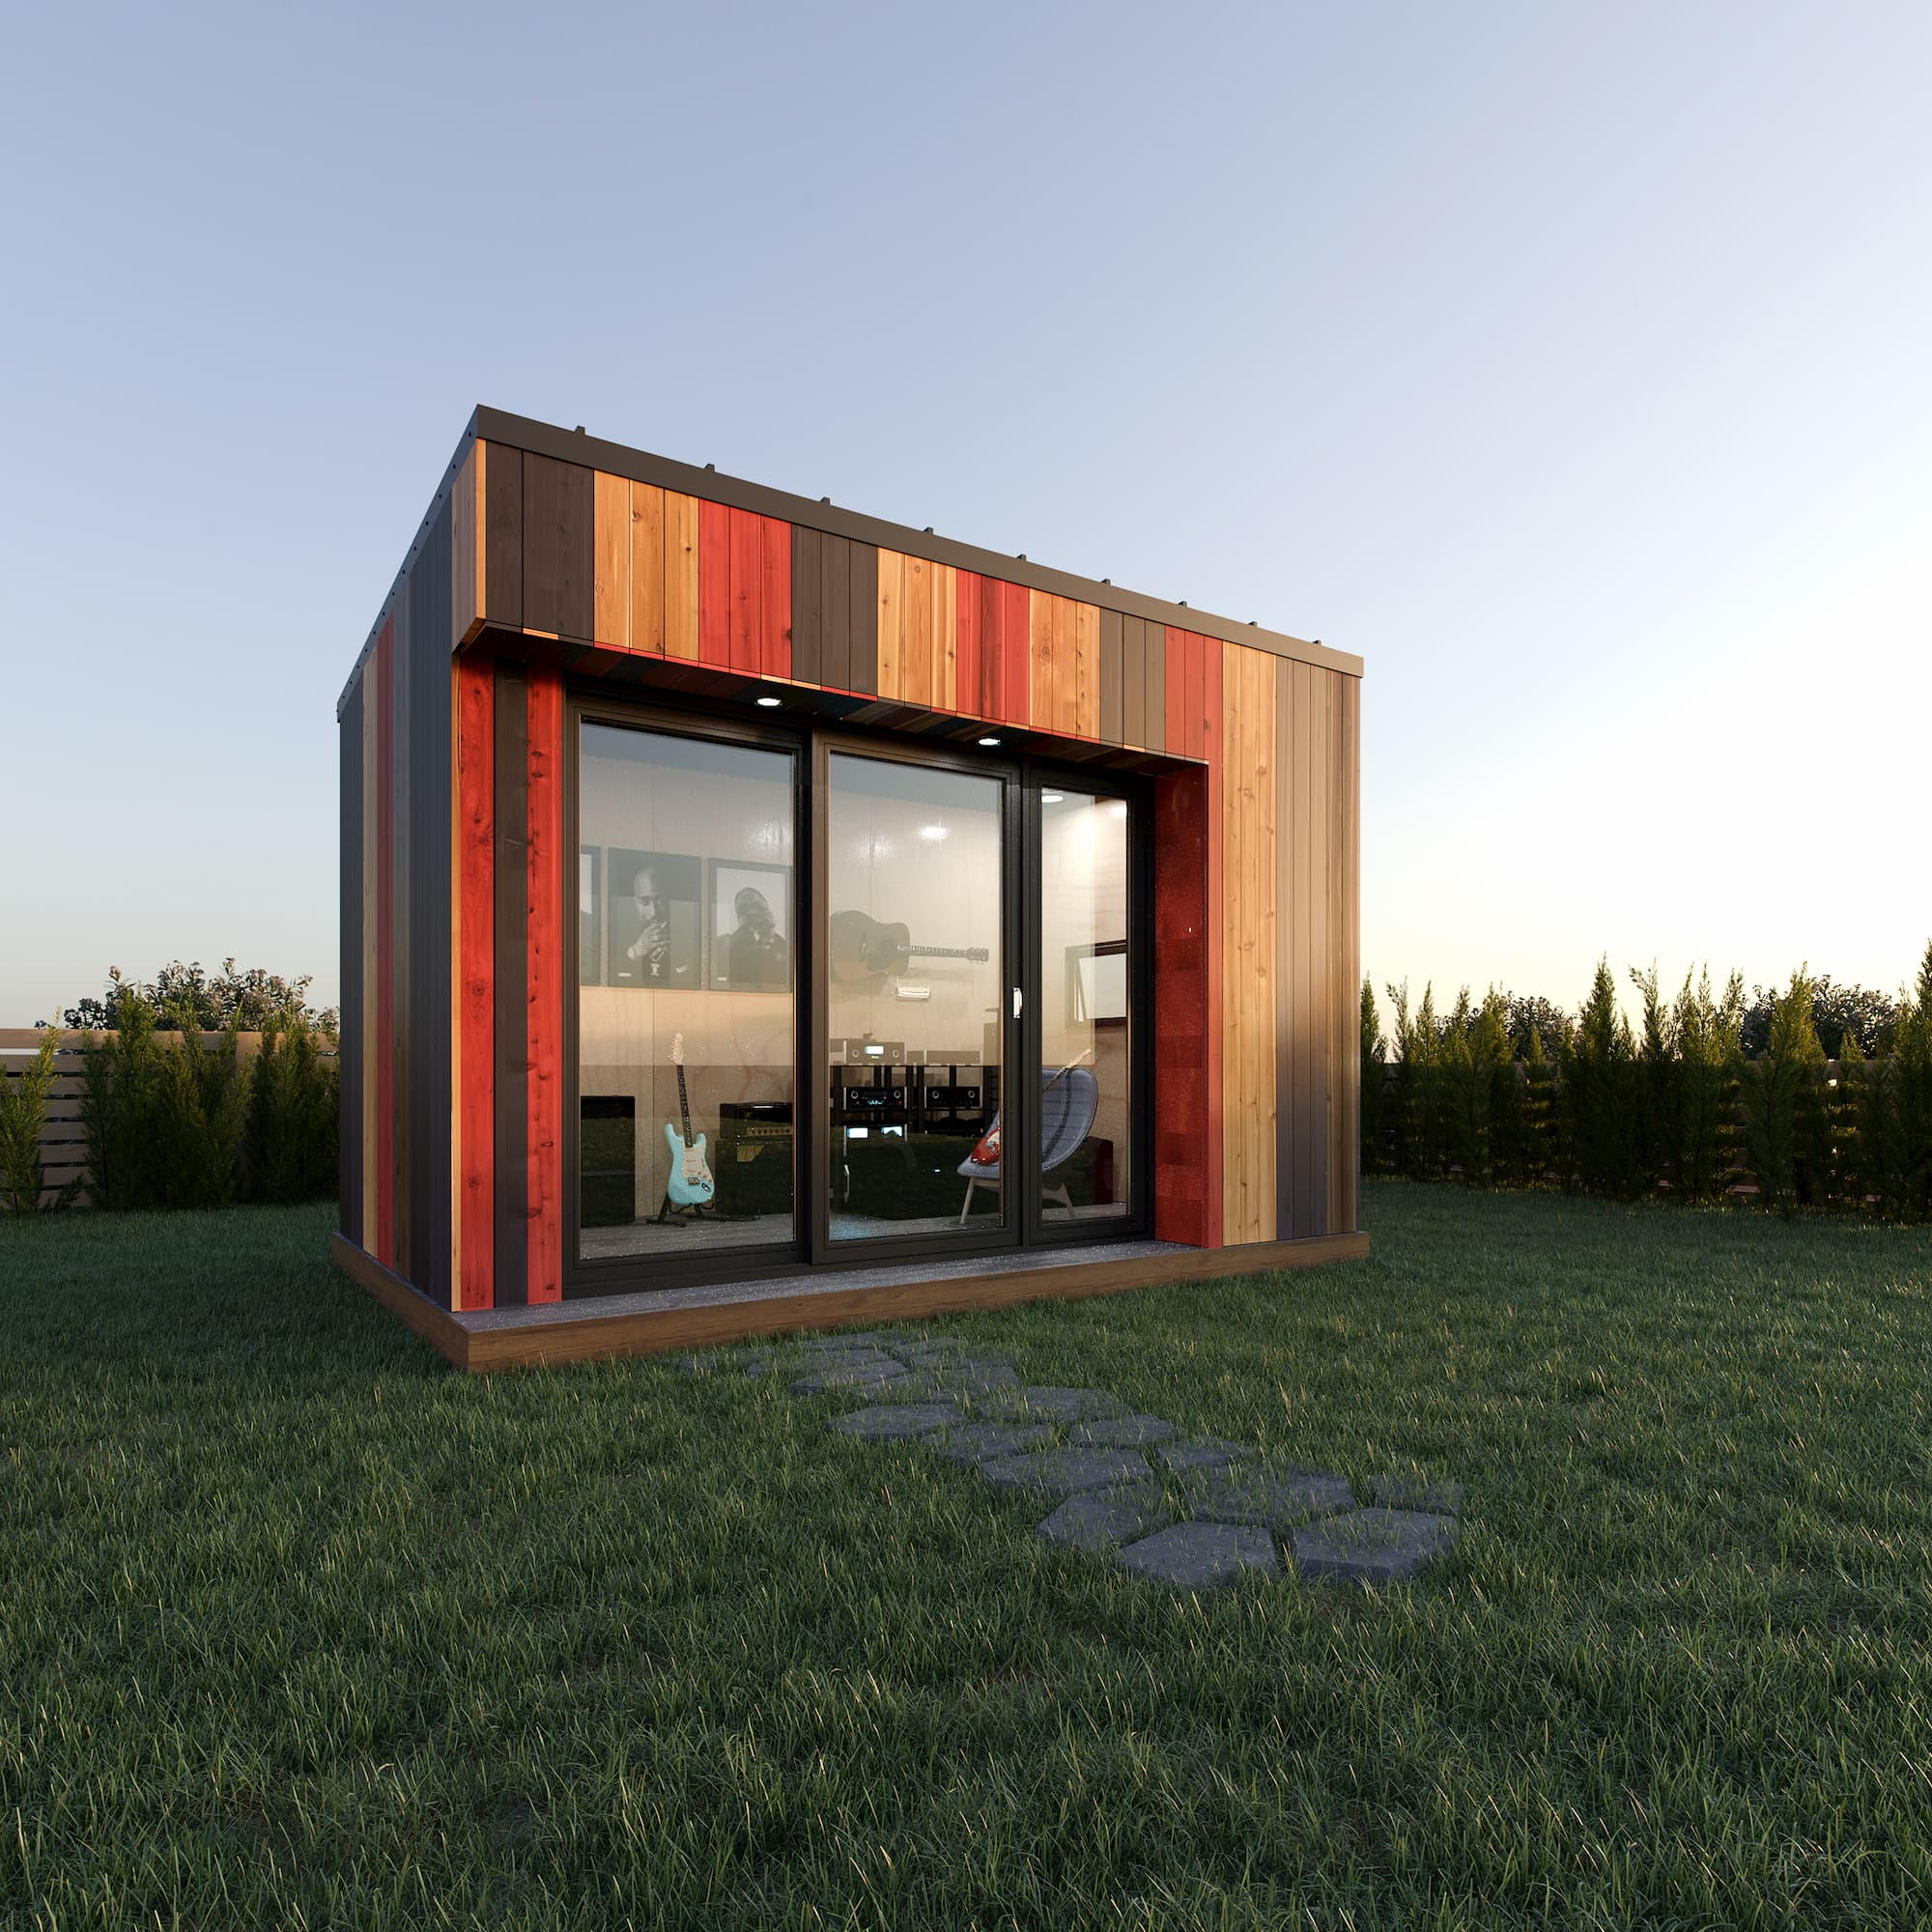 A small modular office situated in a backyard, with wooden panelling, a large window, and a desk & sofa visible.